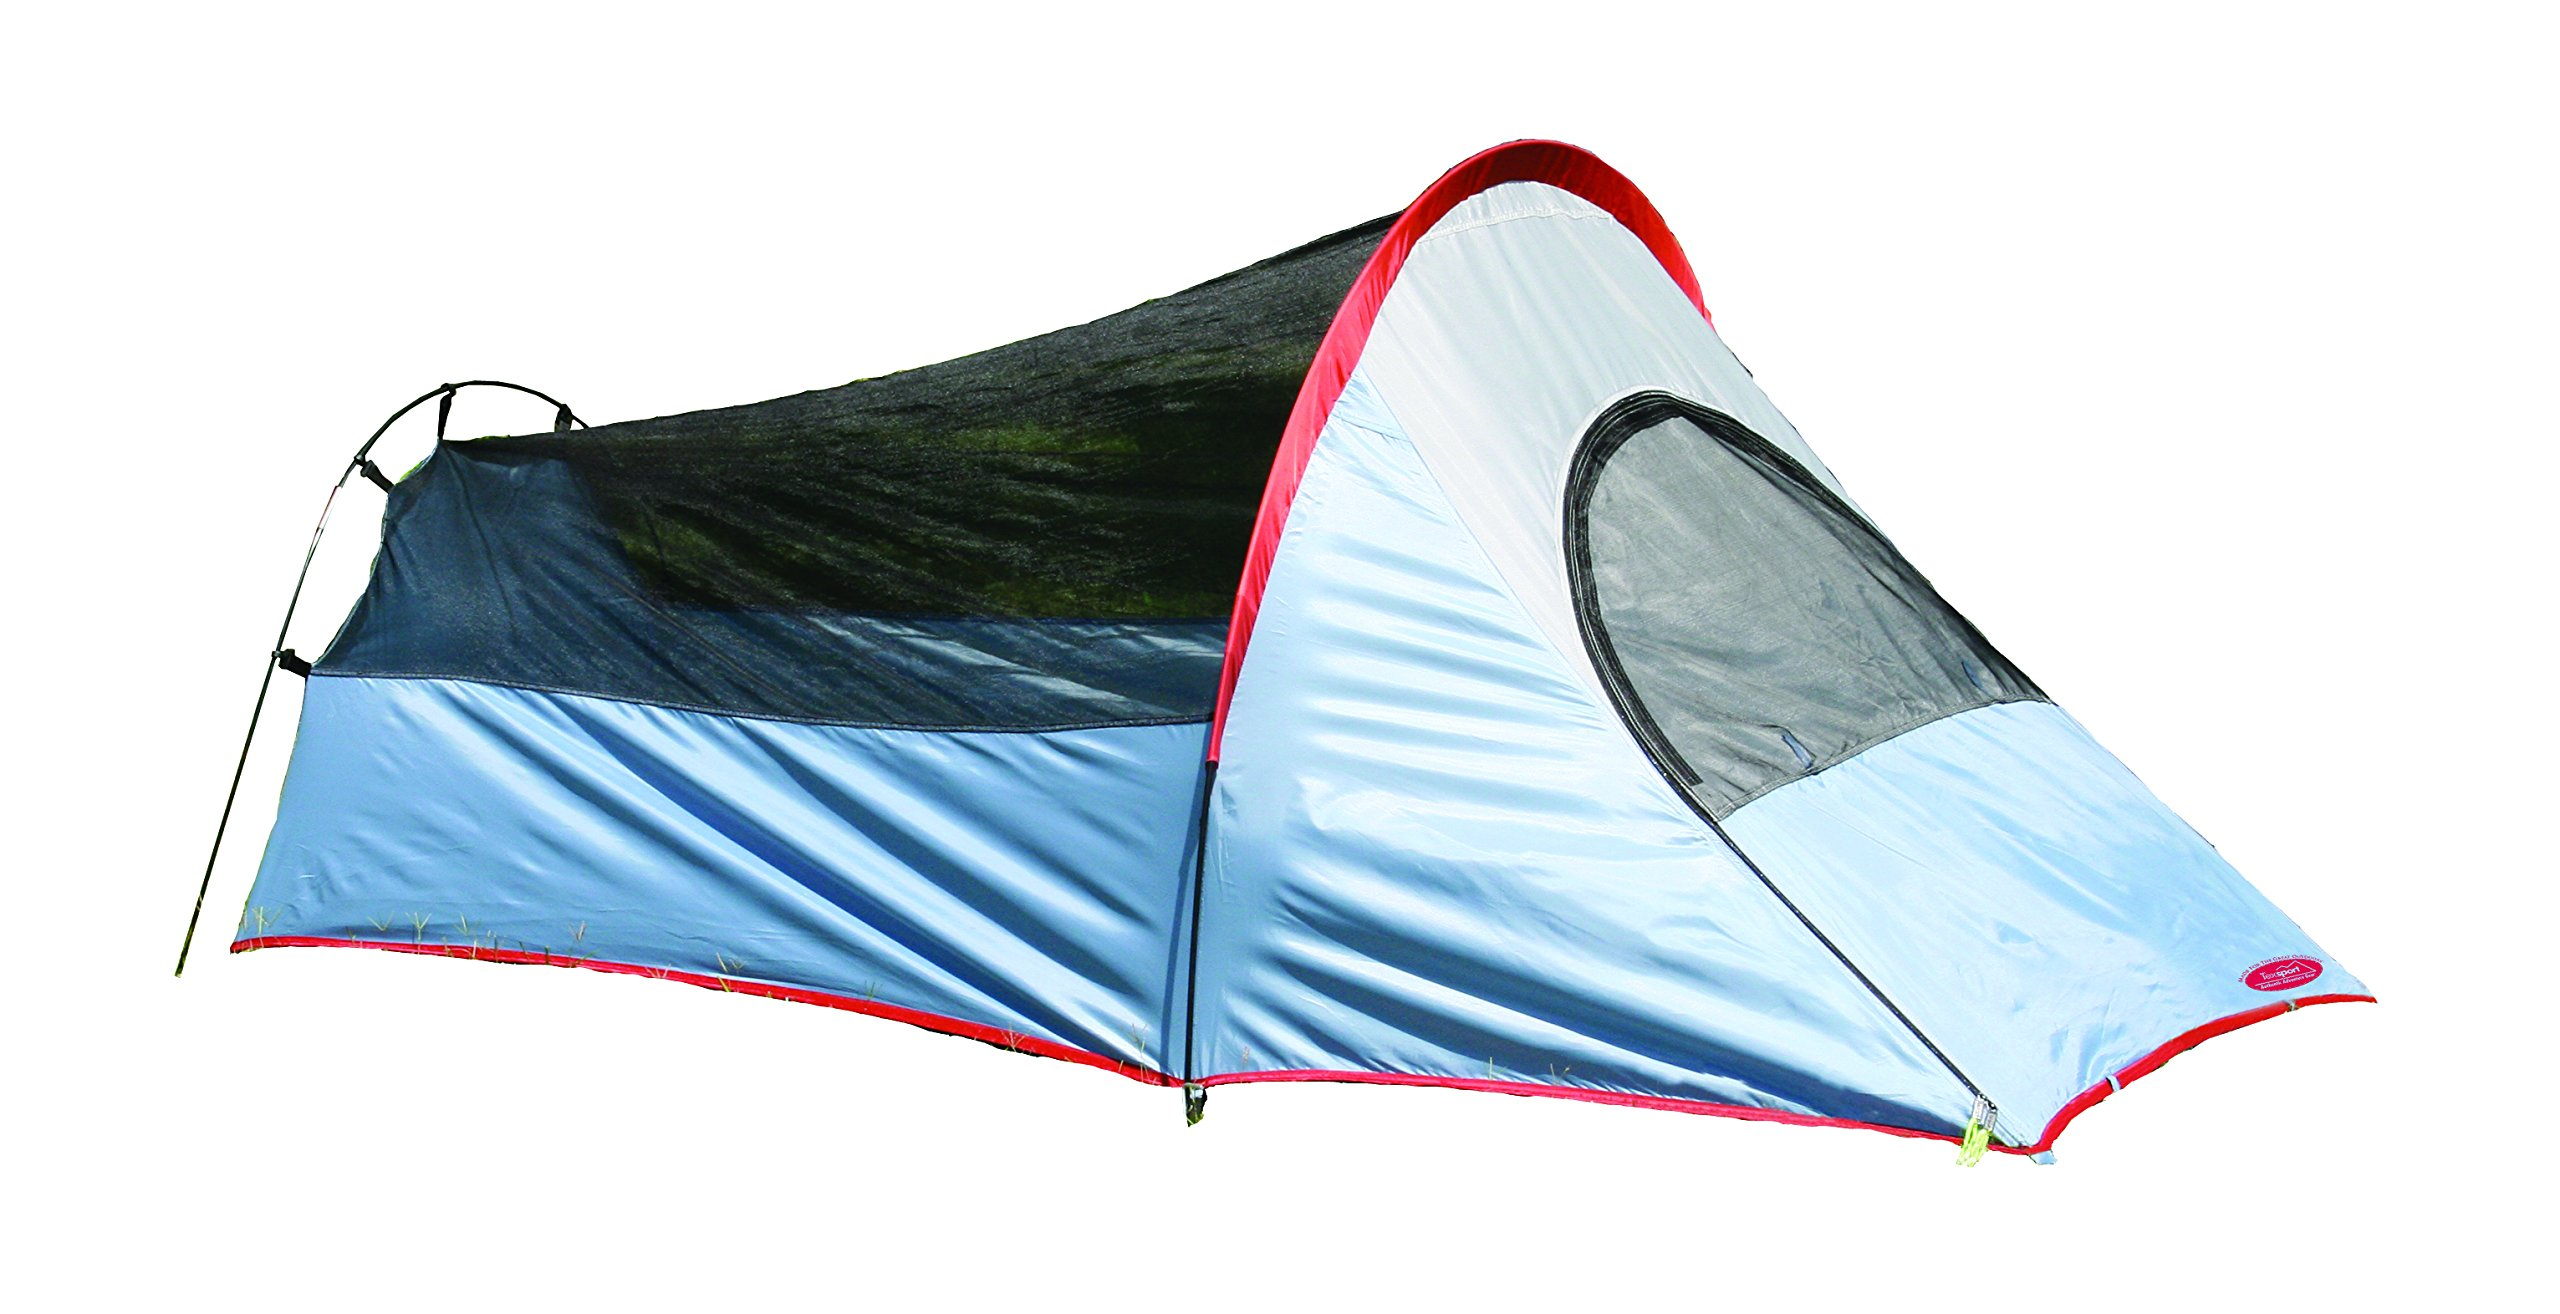 Single Person Bivy Shelter Lightweight Tent Outdoor Backpacking Hiking Camp Kit   eBay